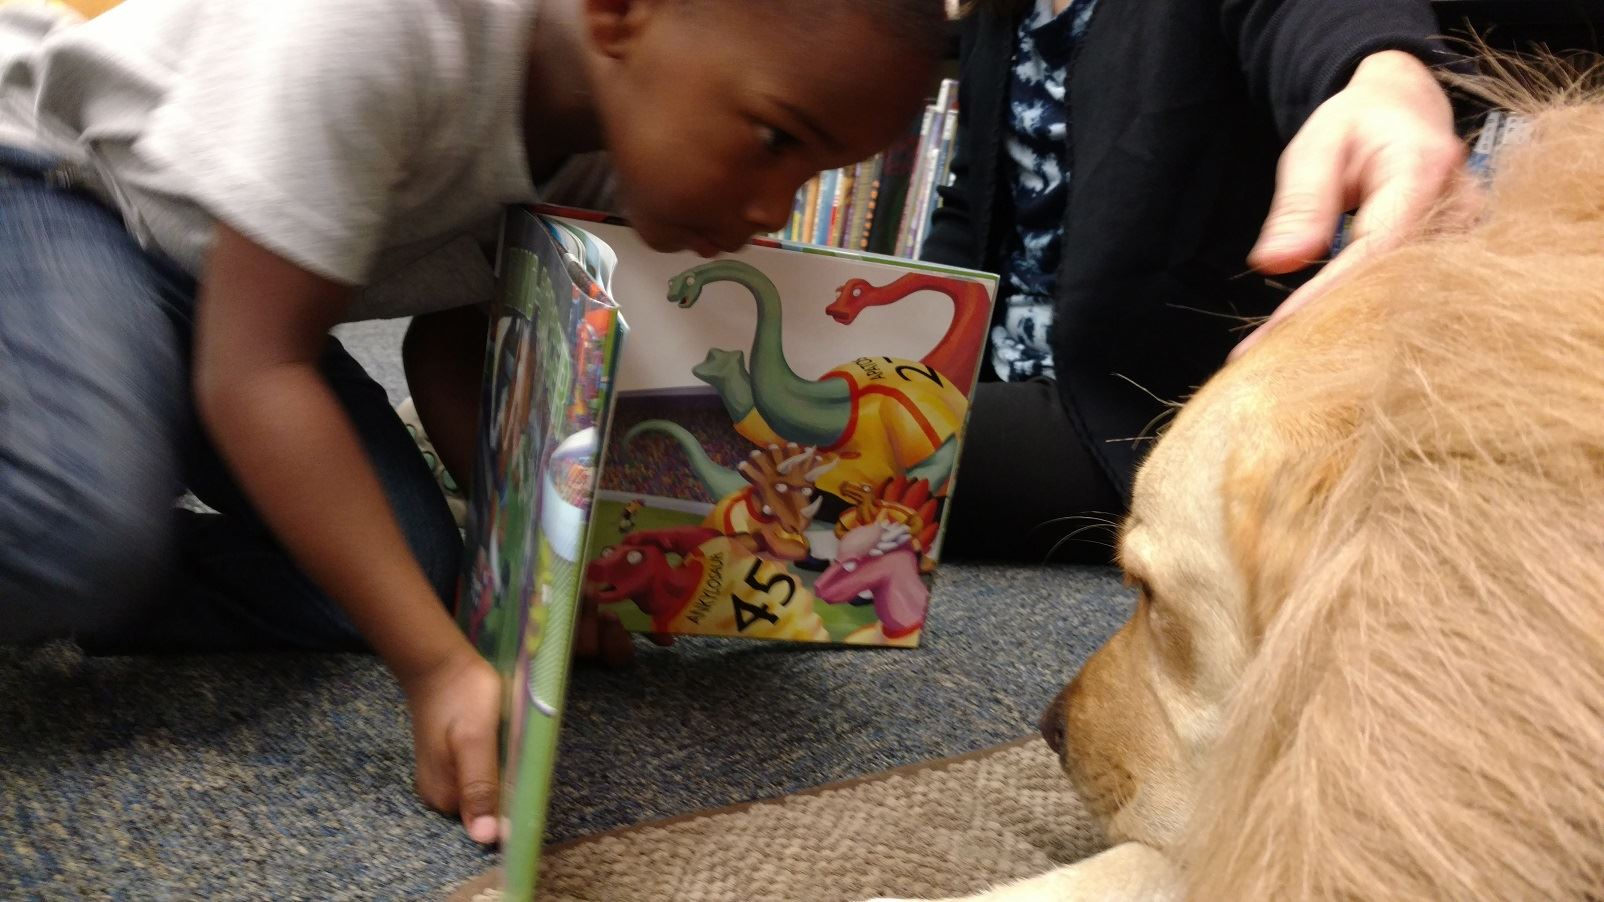 Child showing picture book to dog.